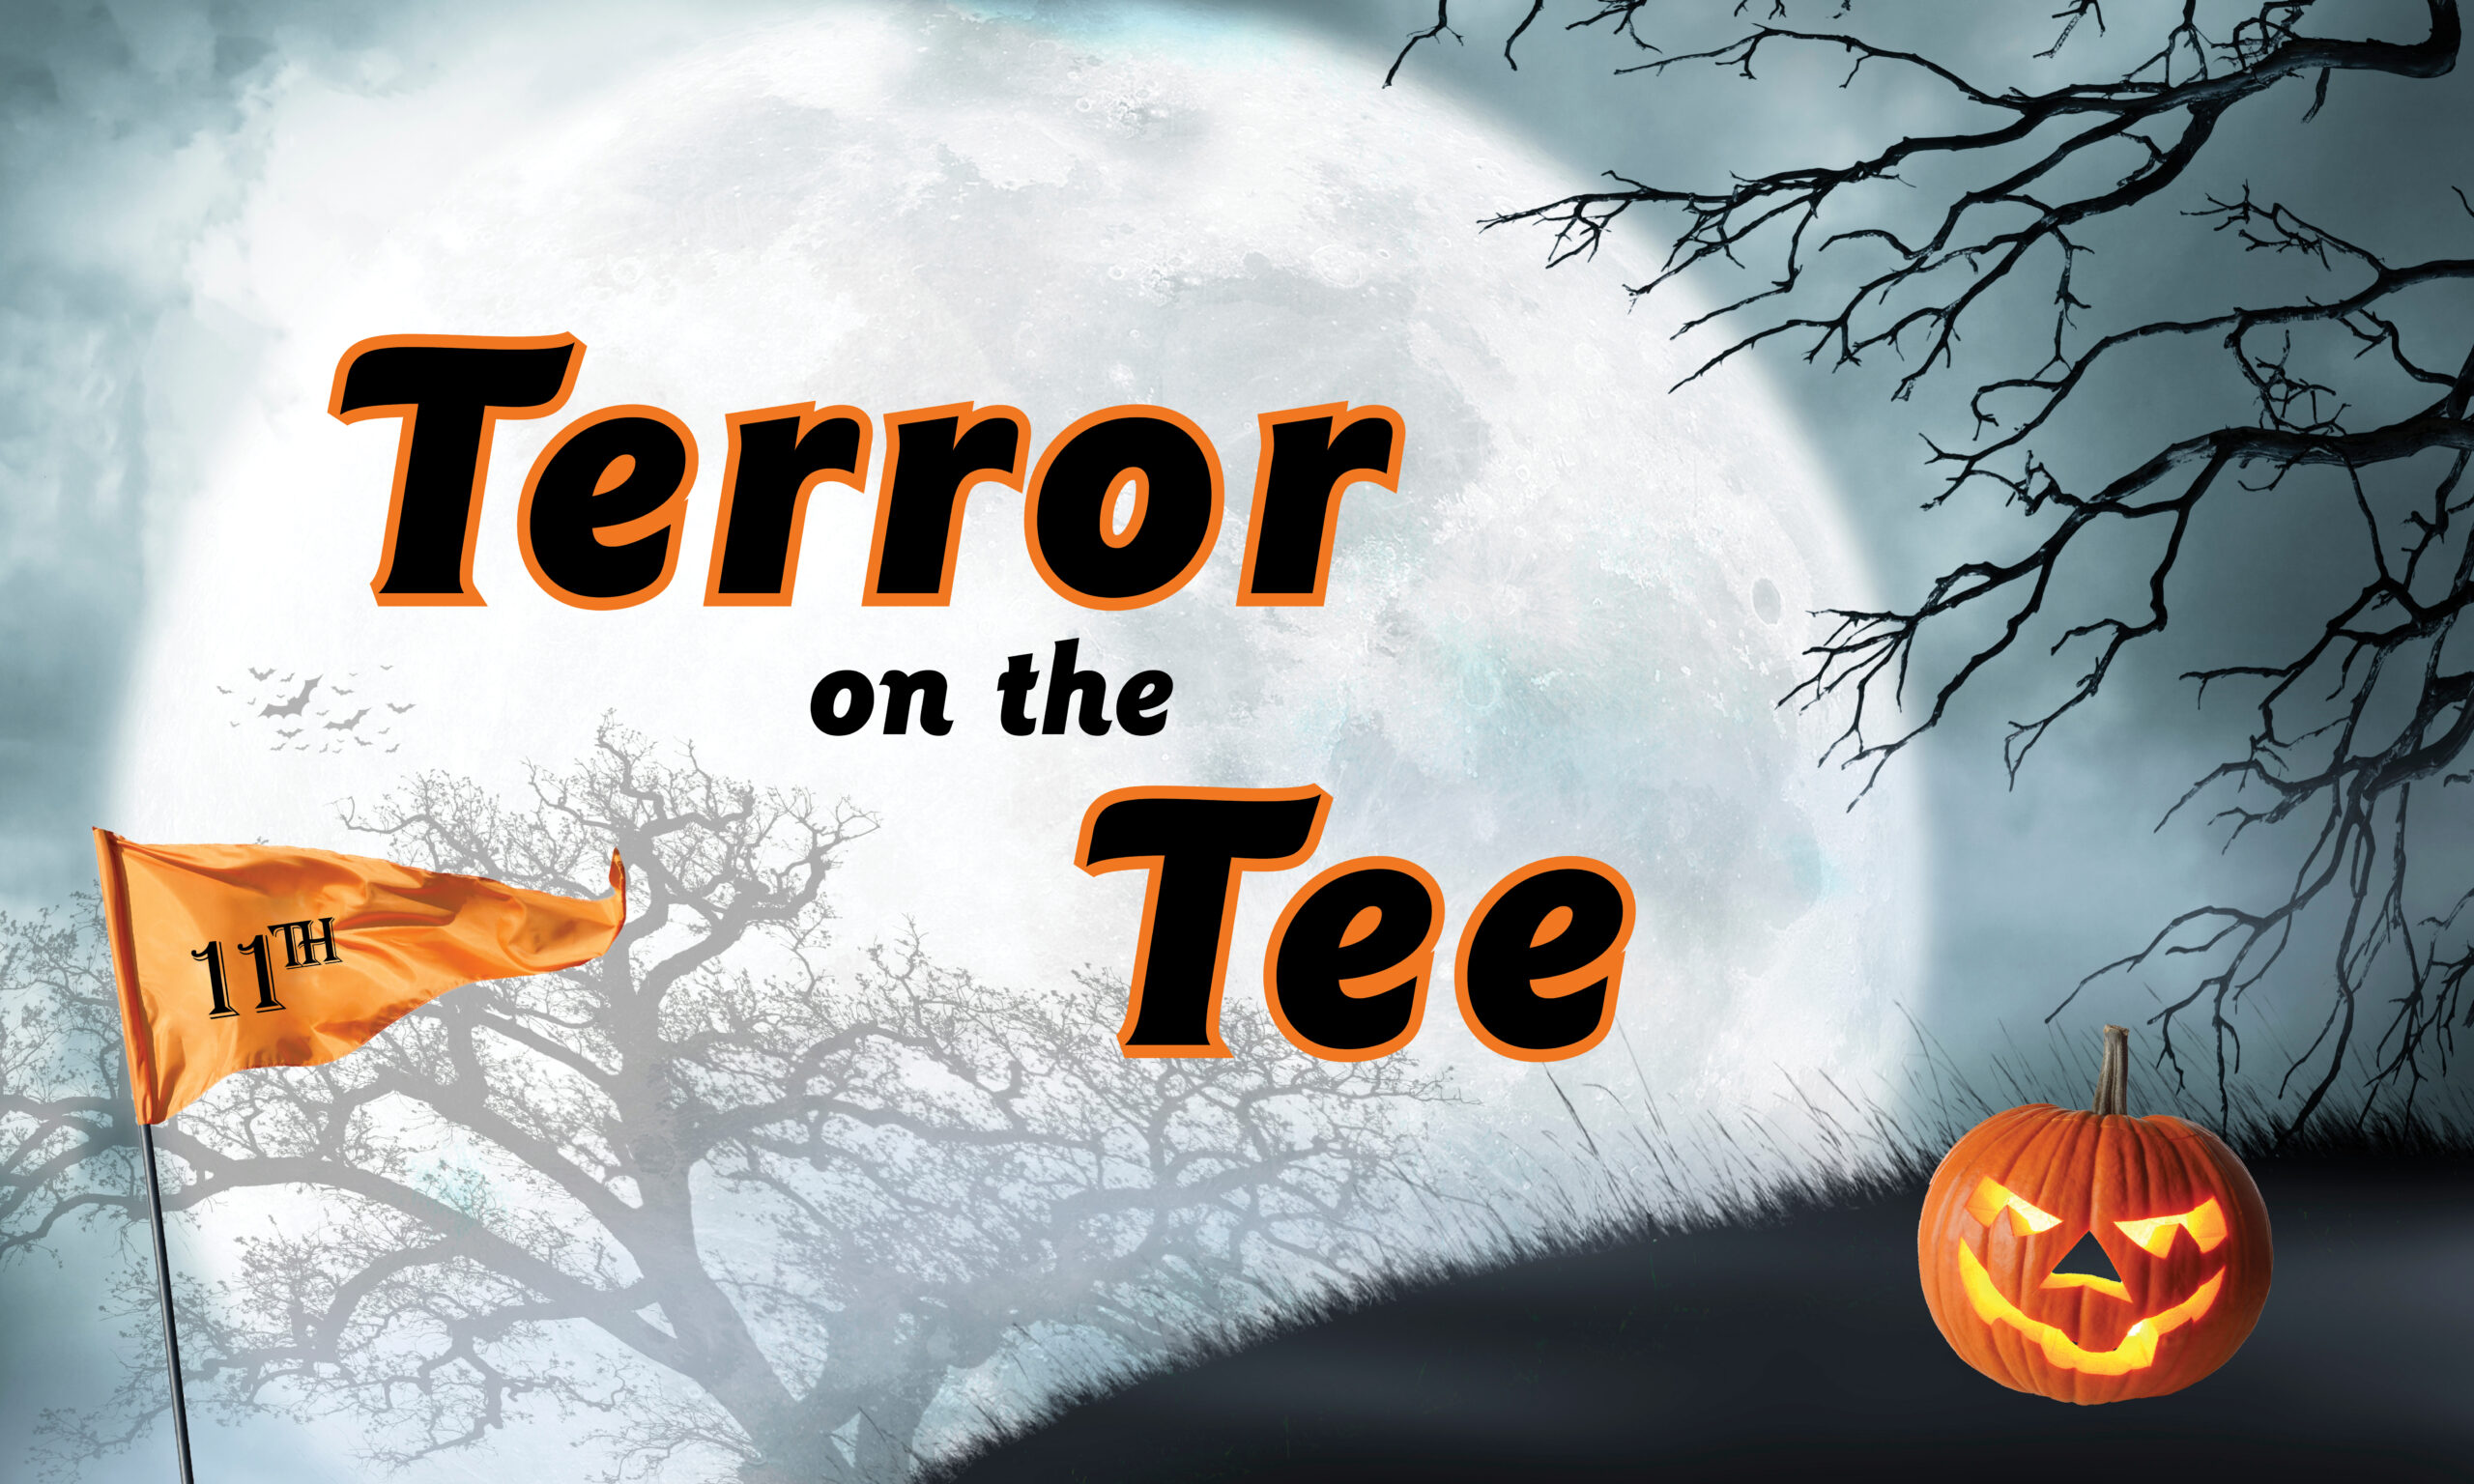 Arc Herkimer Hosting 'Terror on the Tee: Family Fright Nights' at MV Golf & Event Center This Weekend